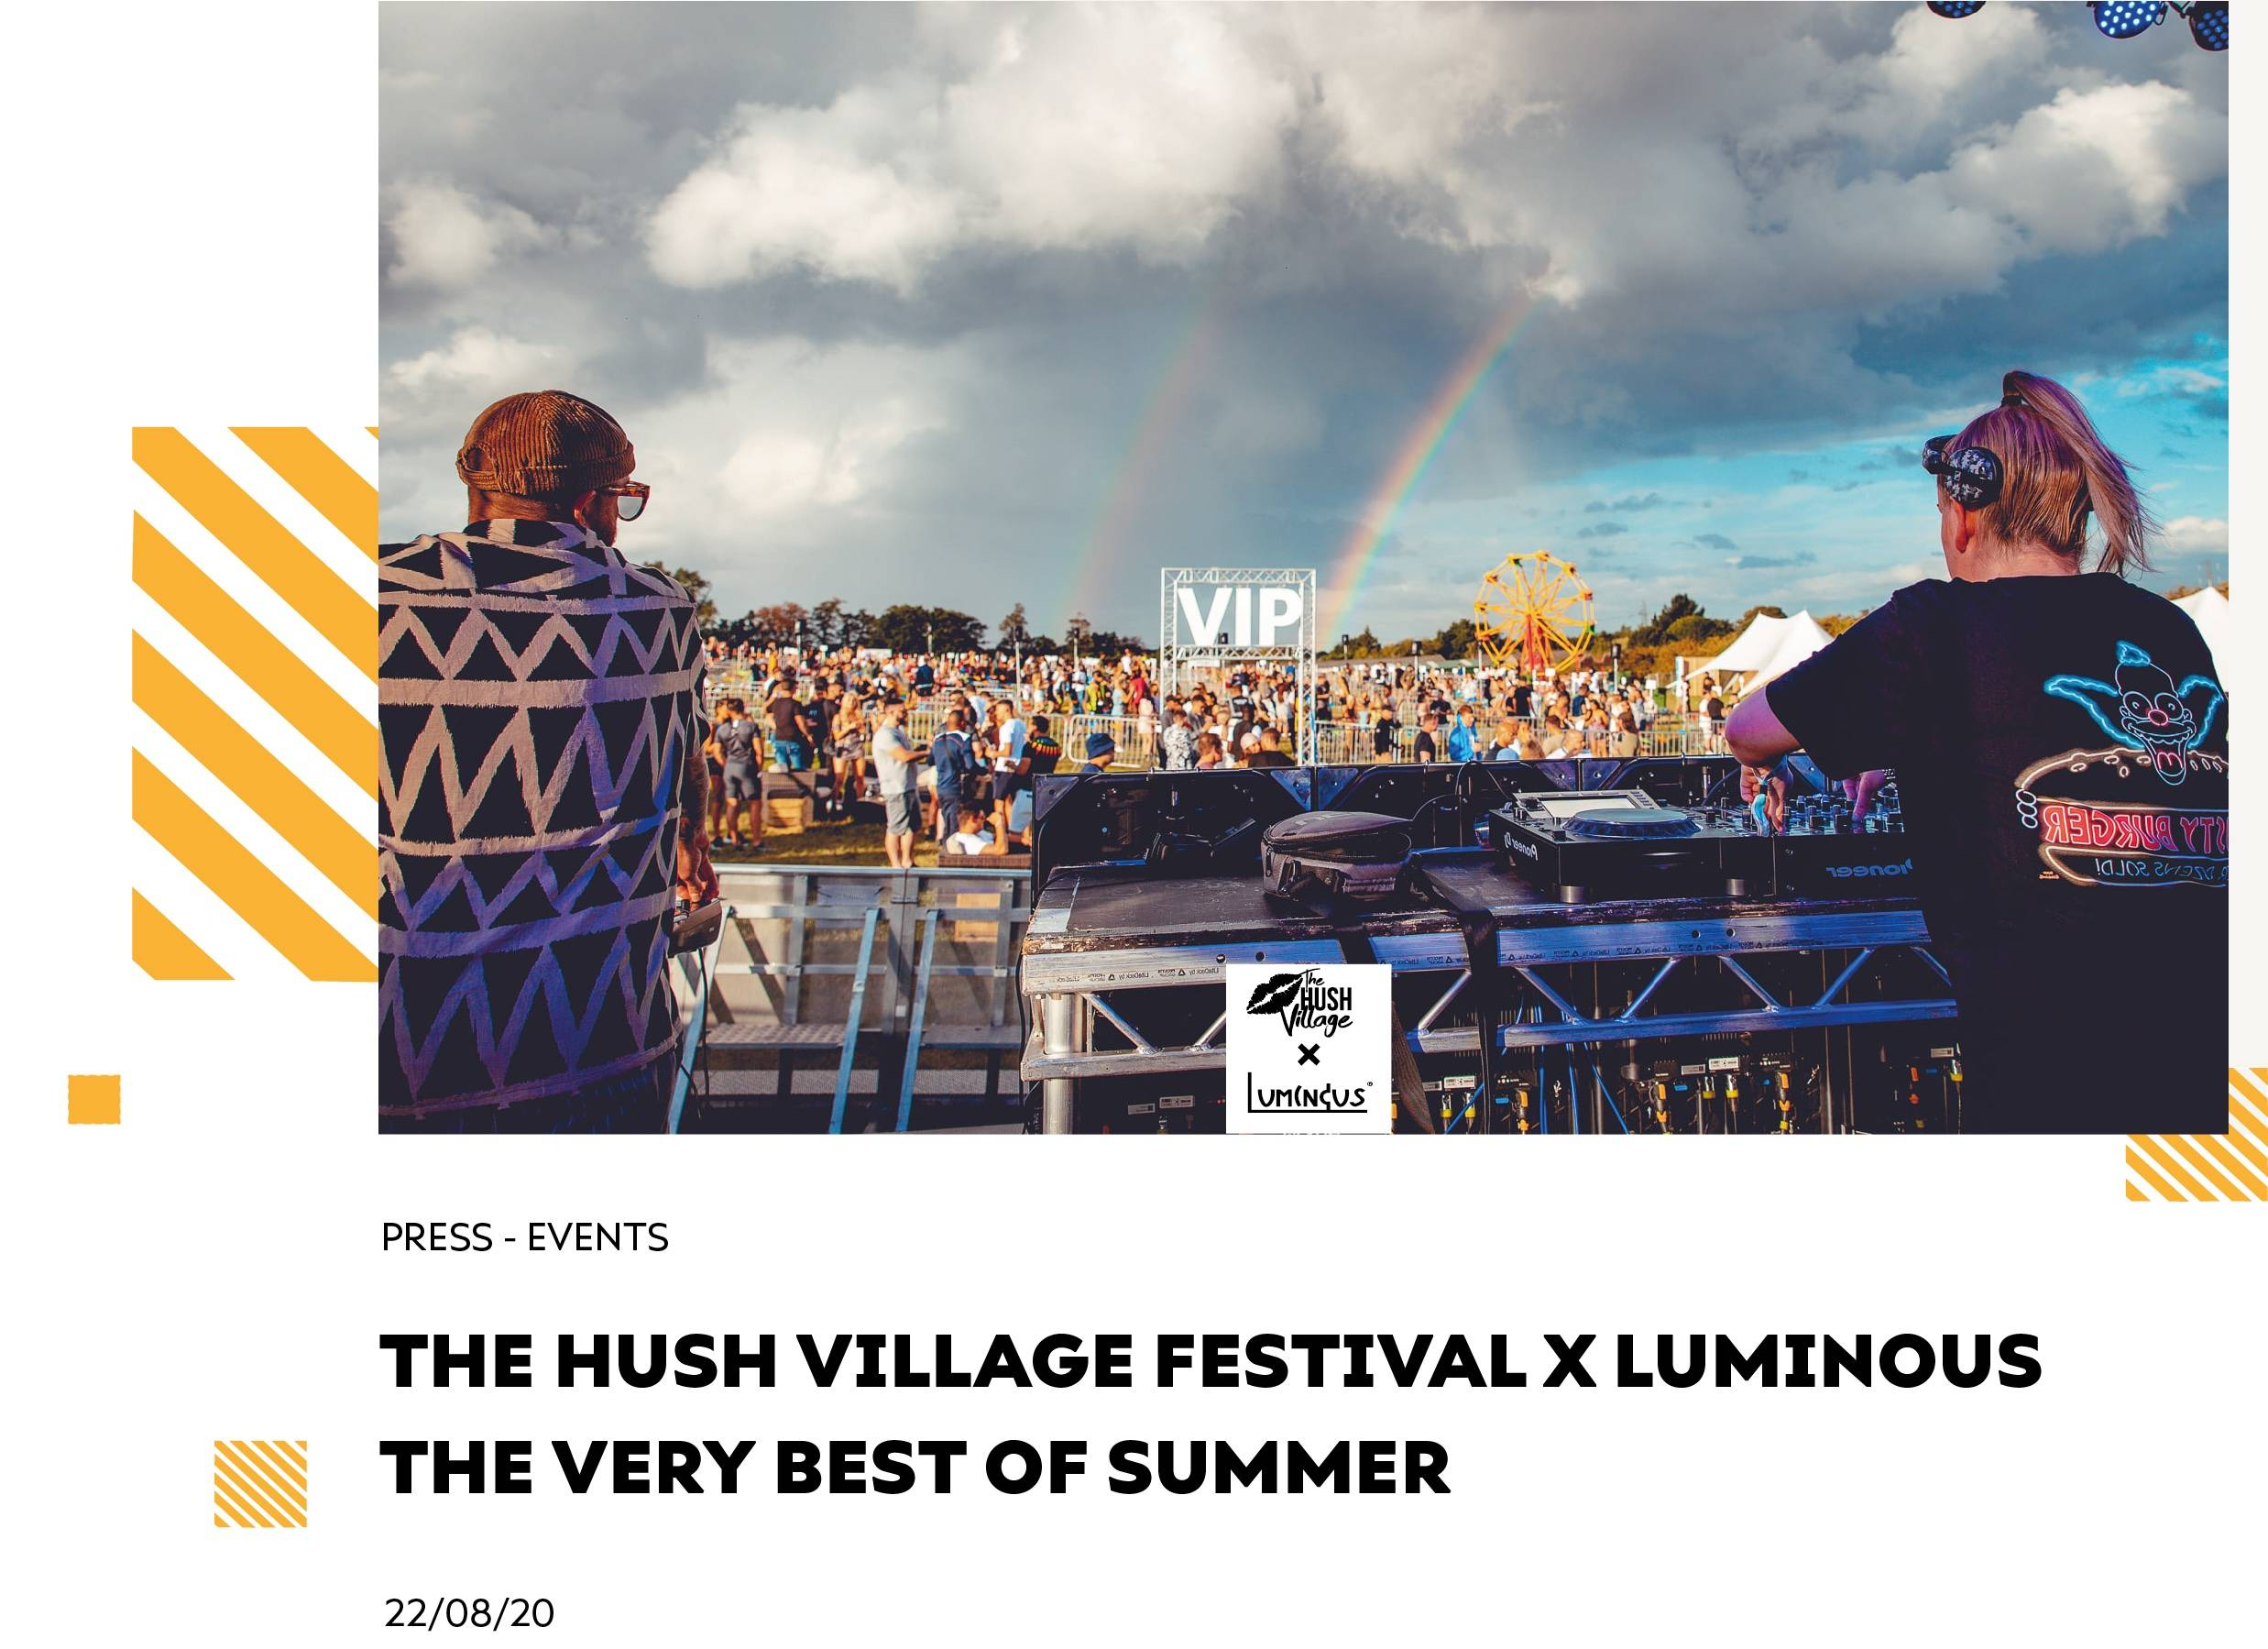 The Hush Village Festival x Luminous - The Very Best of Summer